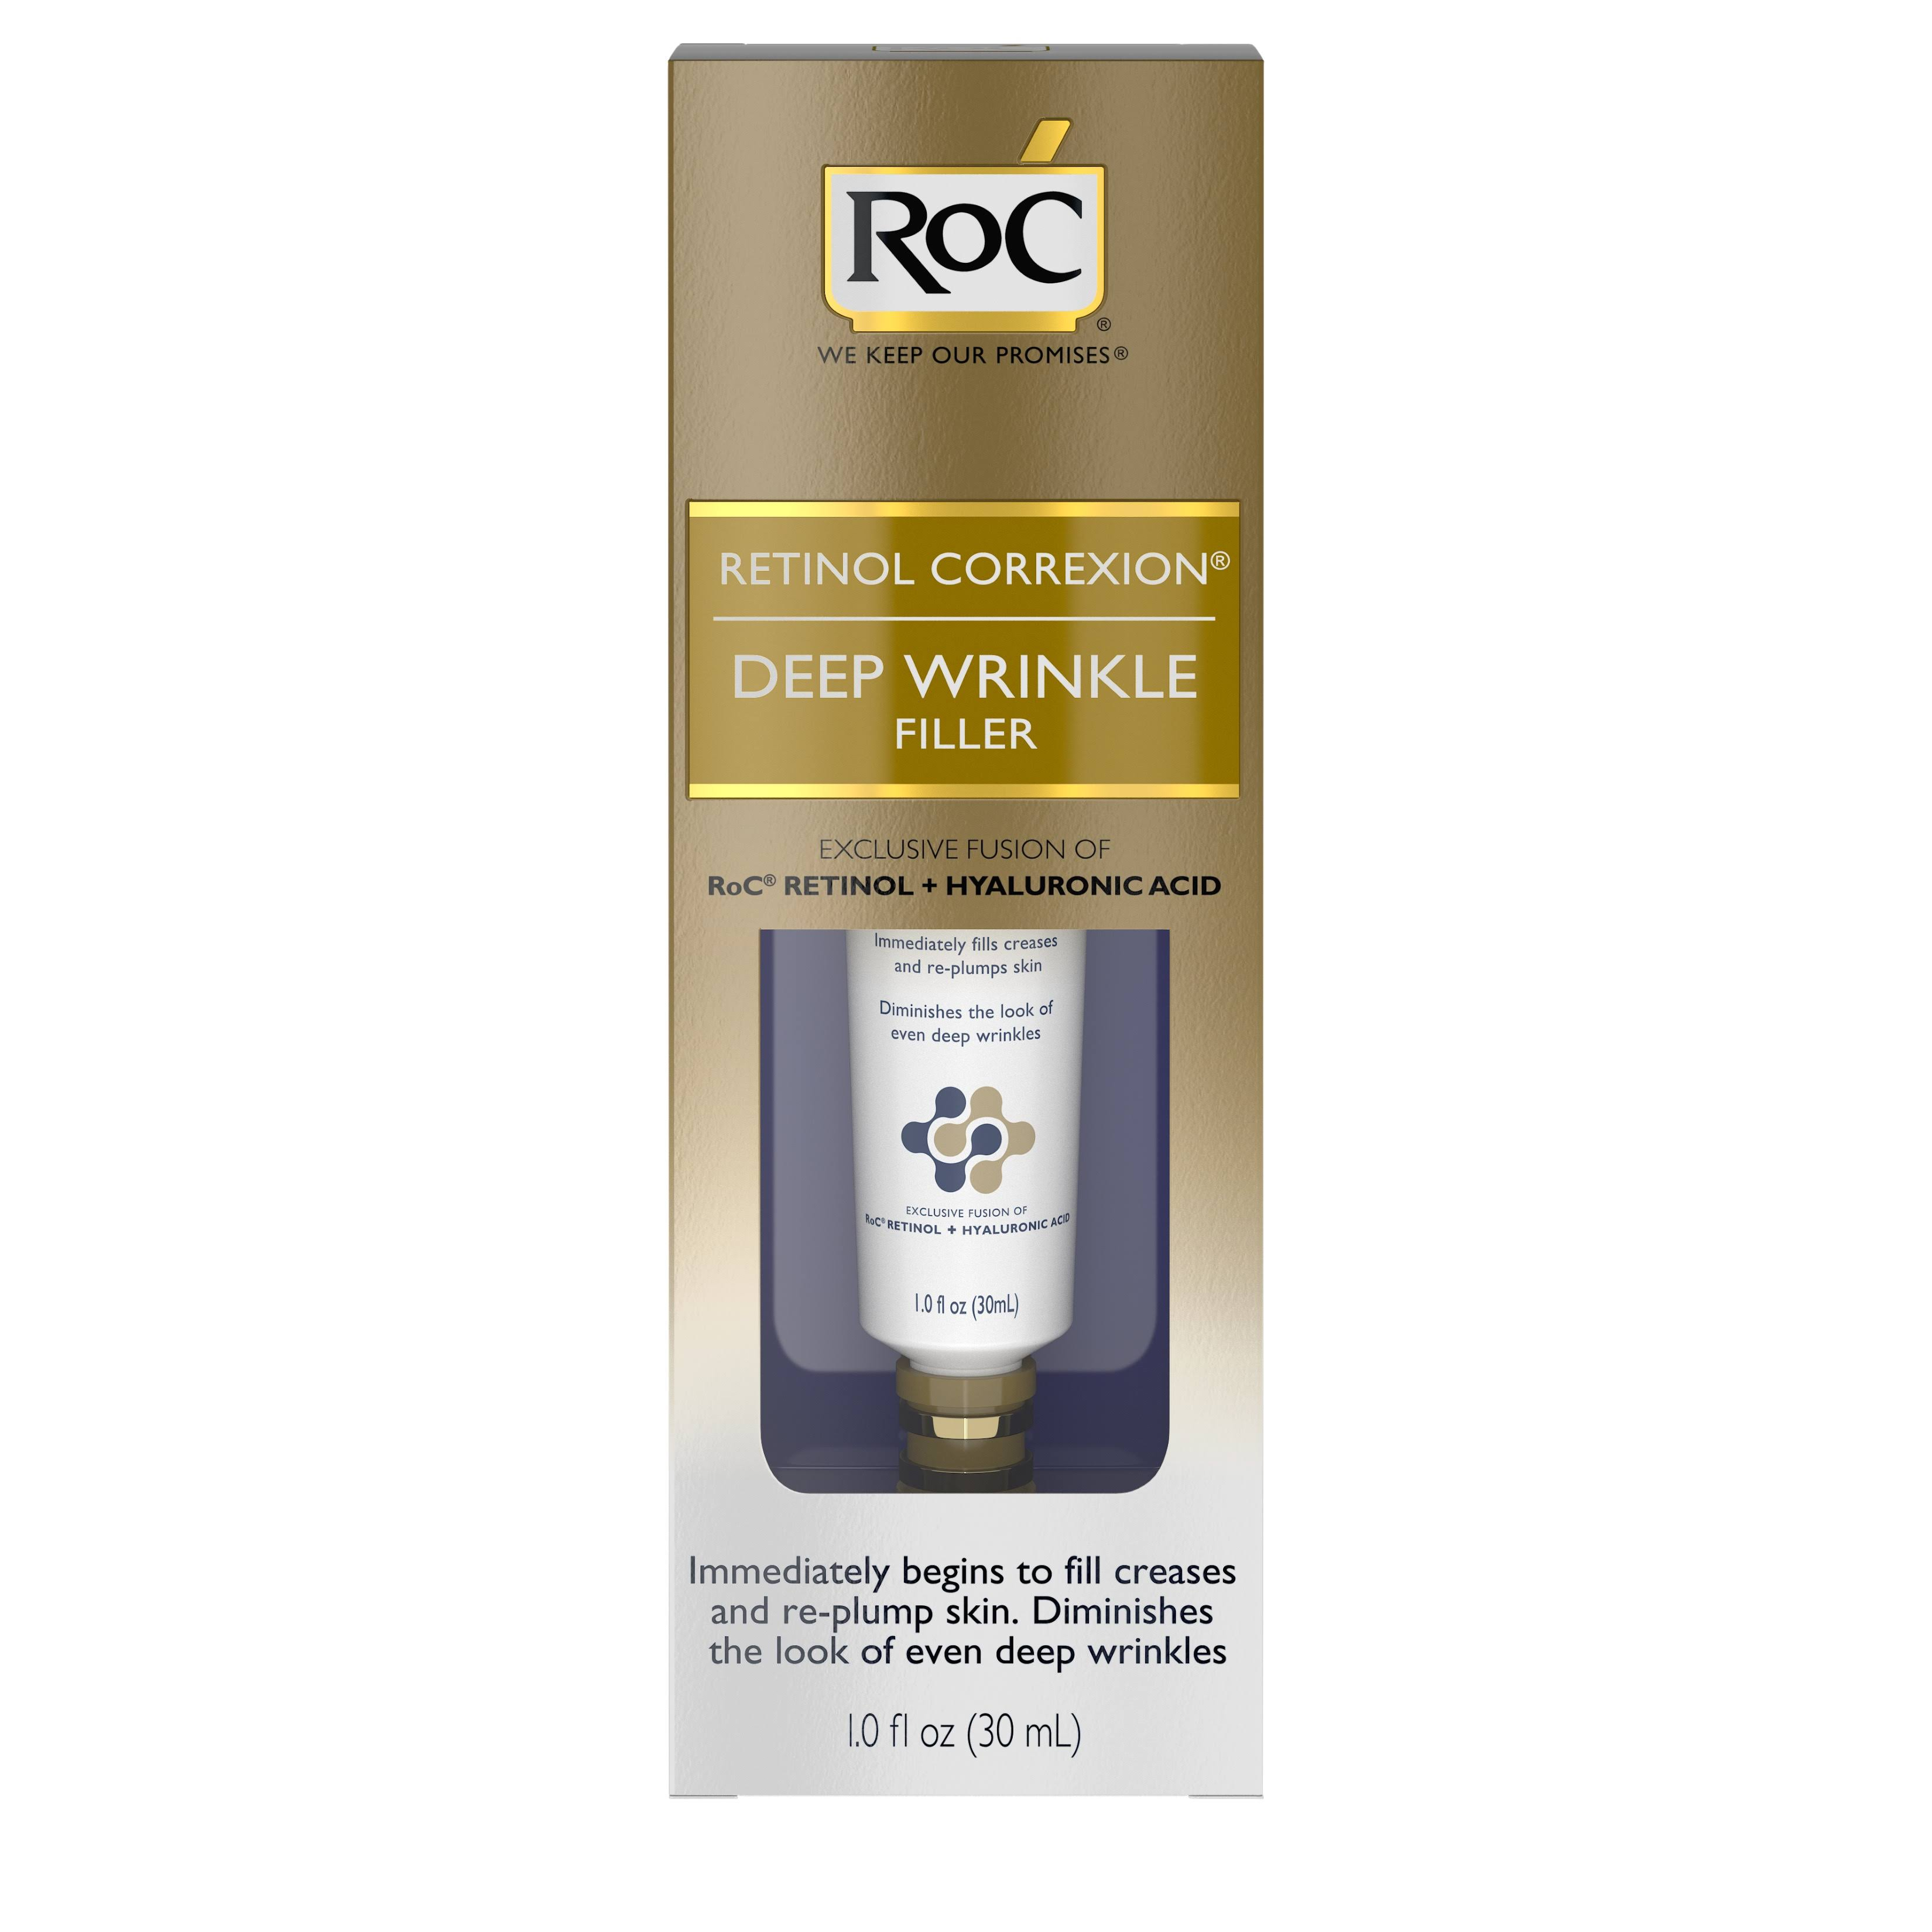 Roc Retinol Correxion Deep Wrinkle Facial Filler - 1oz